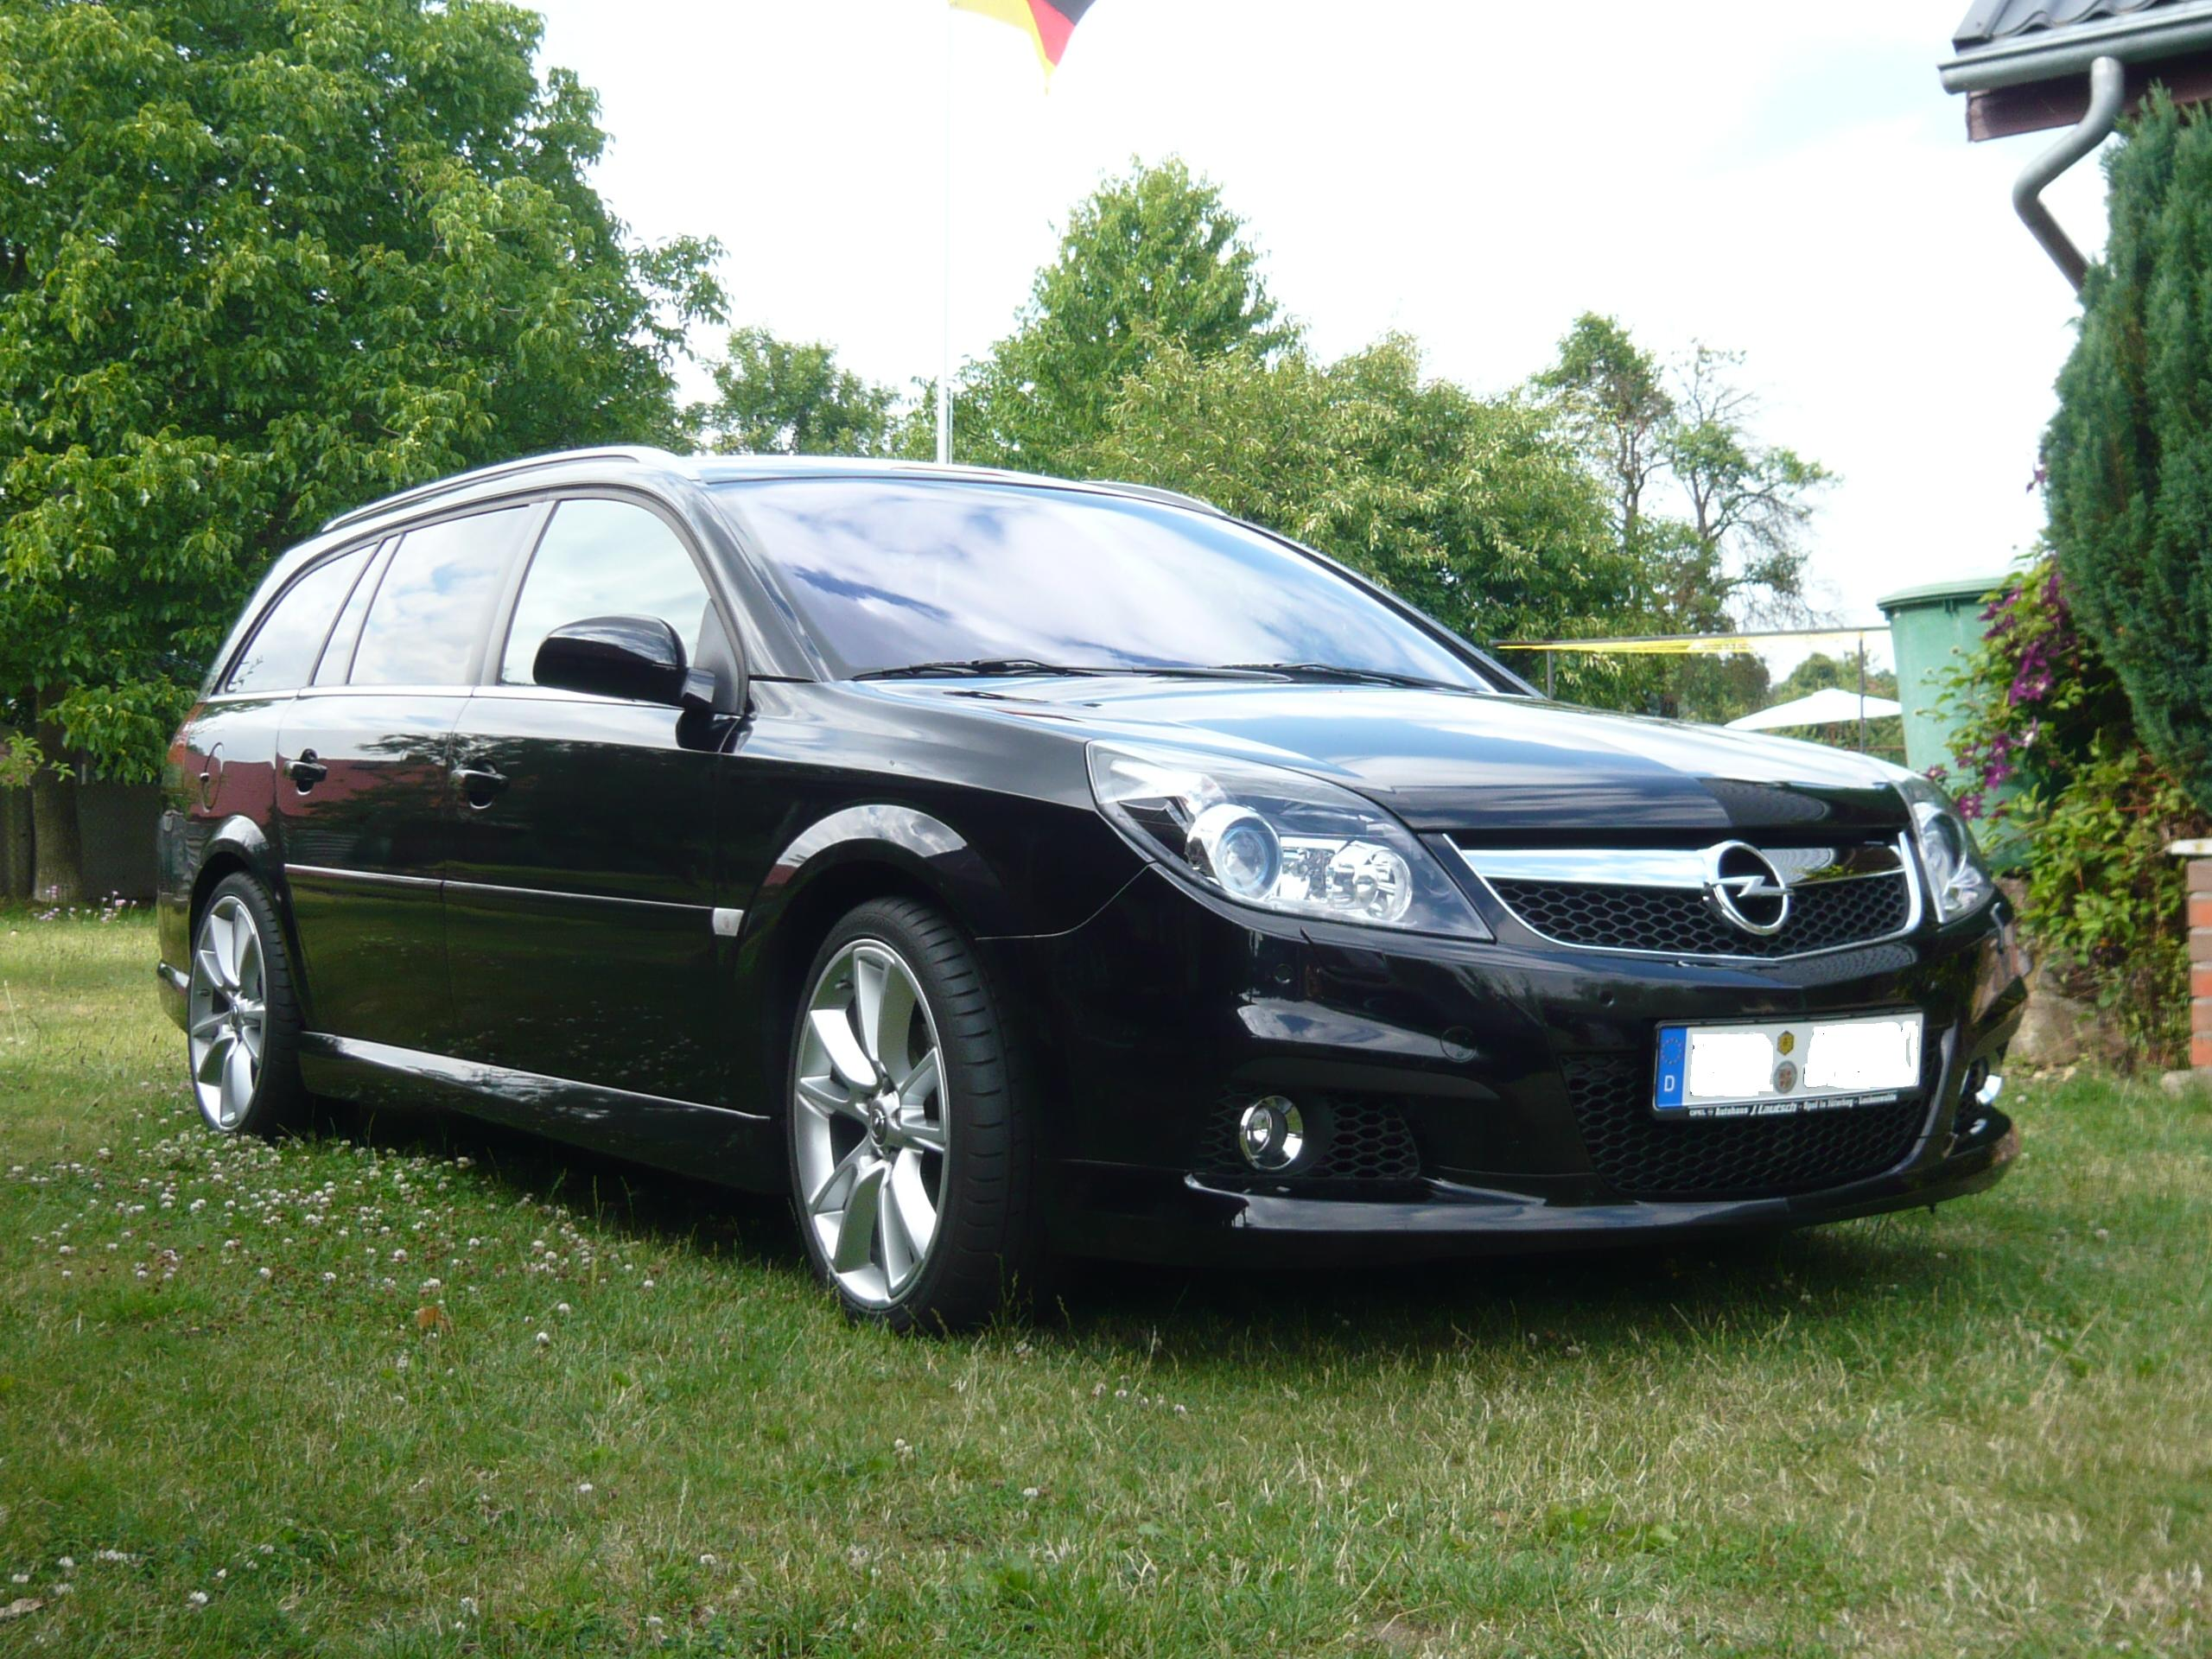 opel vectra caravan opc photos 8 on better parts ltd. Black Bedroom Furniture Sets. Home Design Ideas